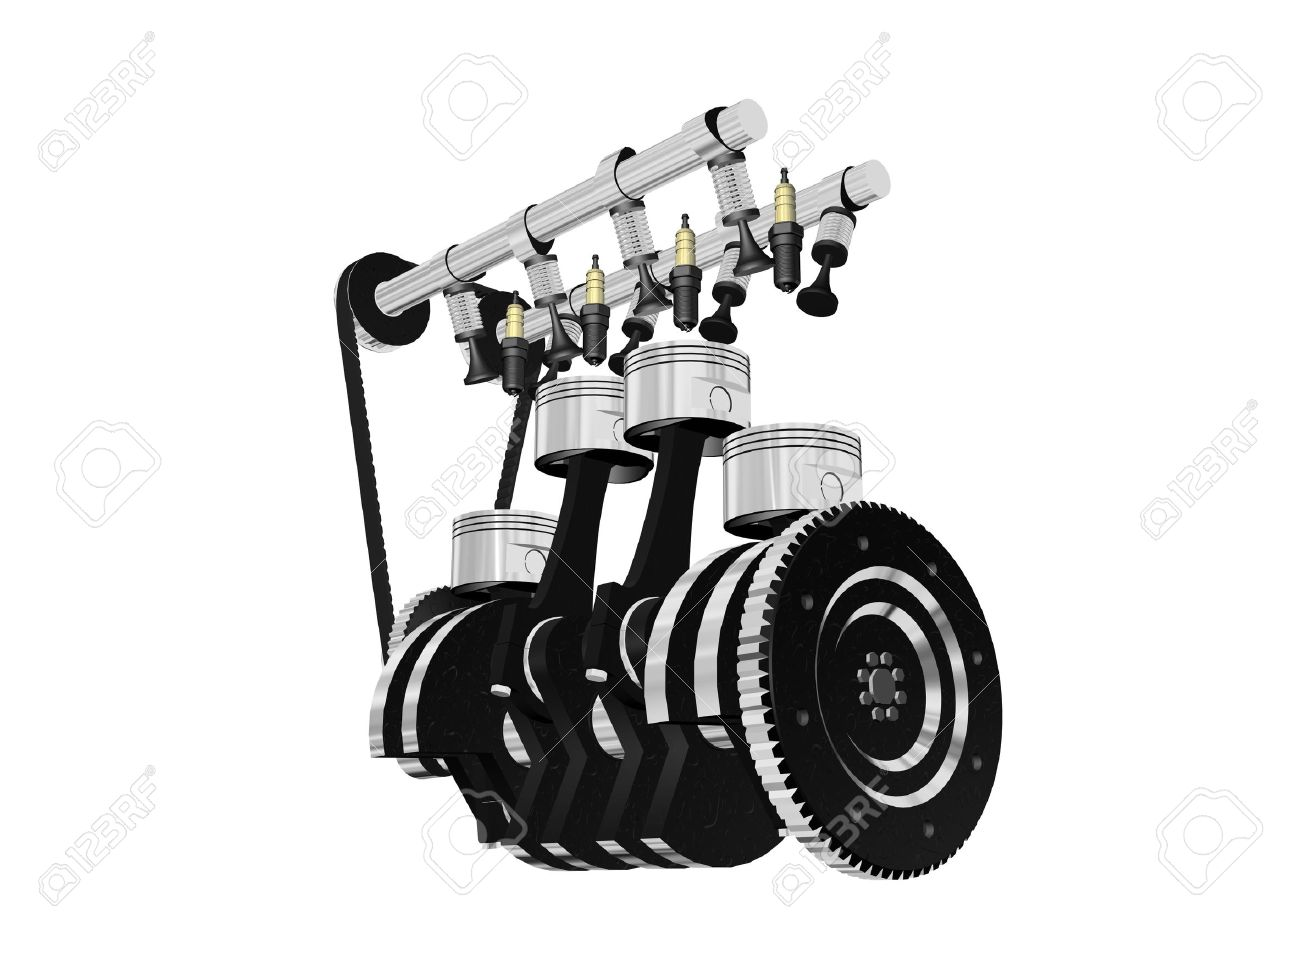 engine clear and big, isolated in high resolution Stock Photo - 5385301